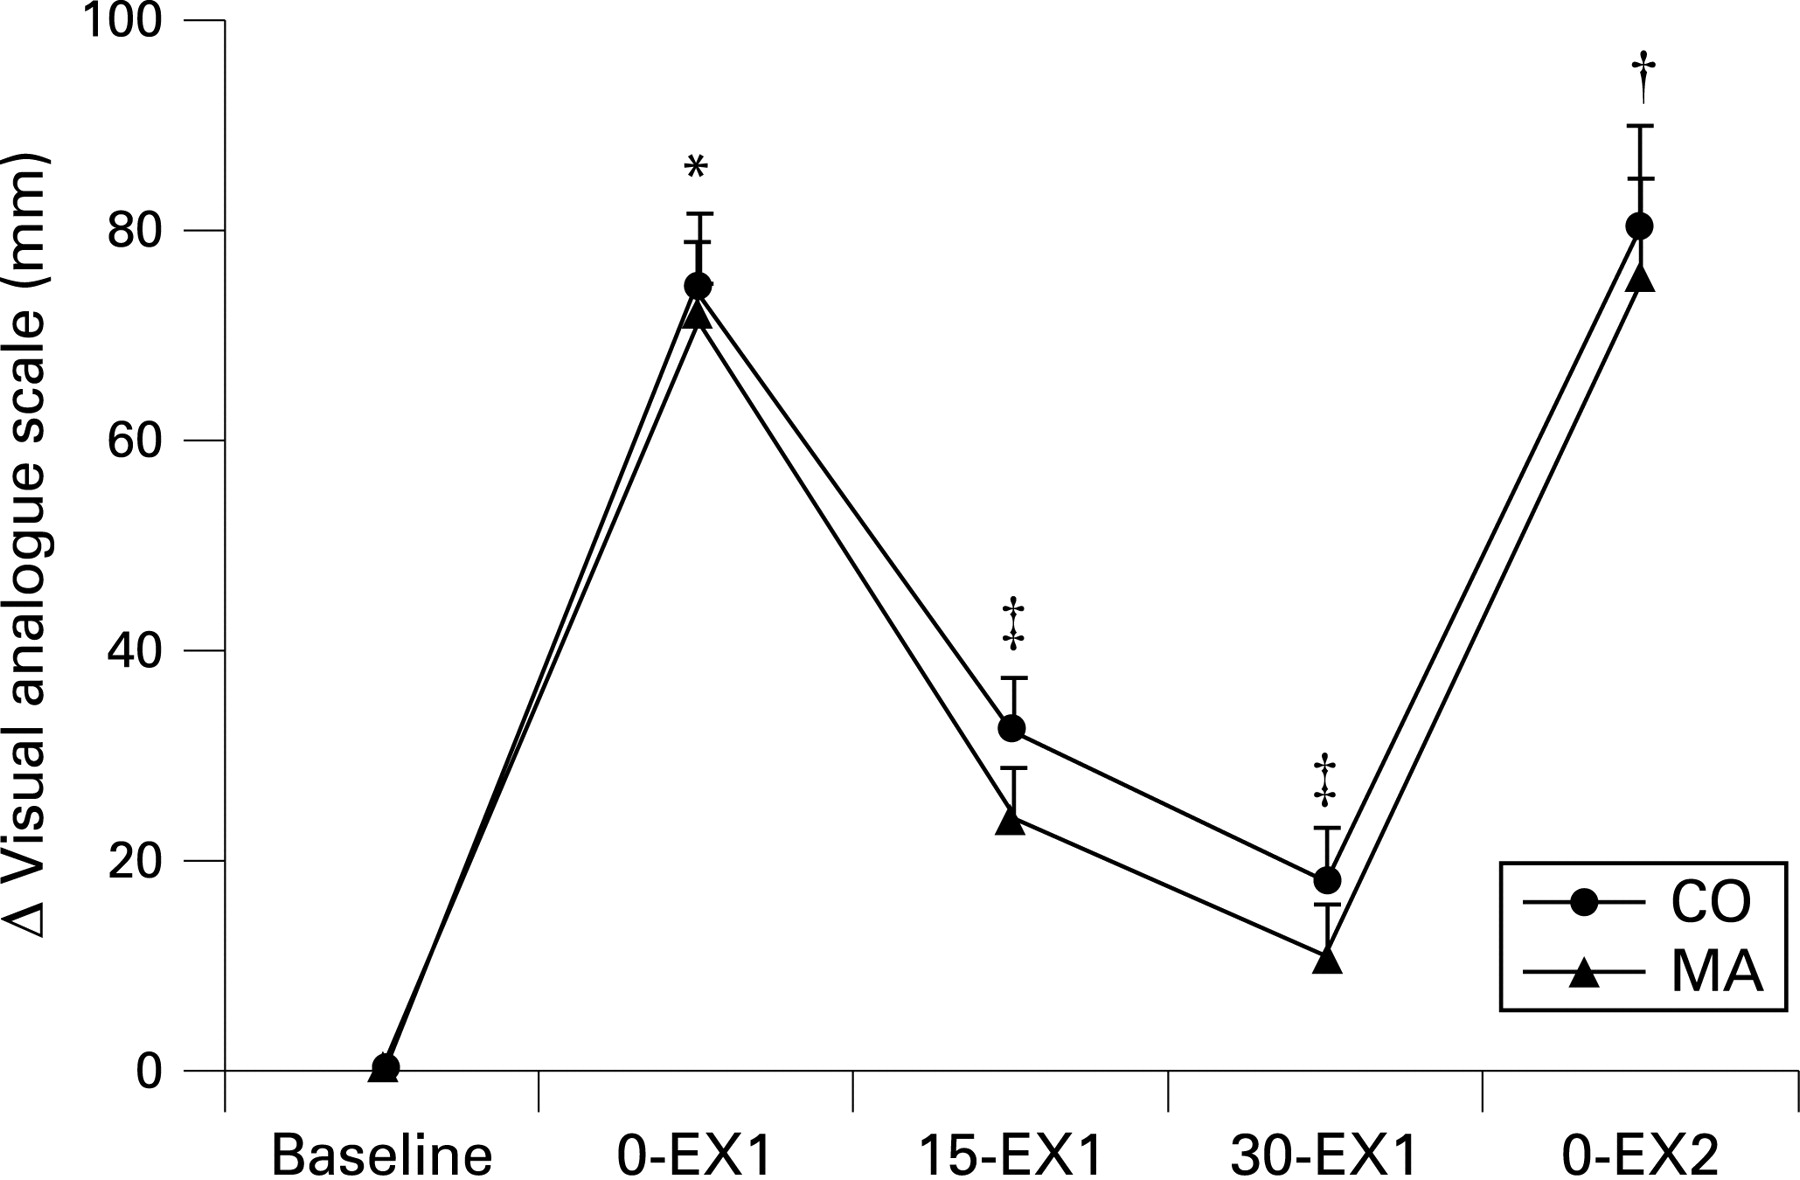 Effects of petrissage massage on fatigue and exercise